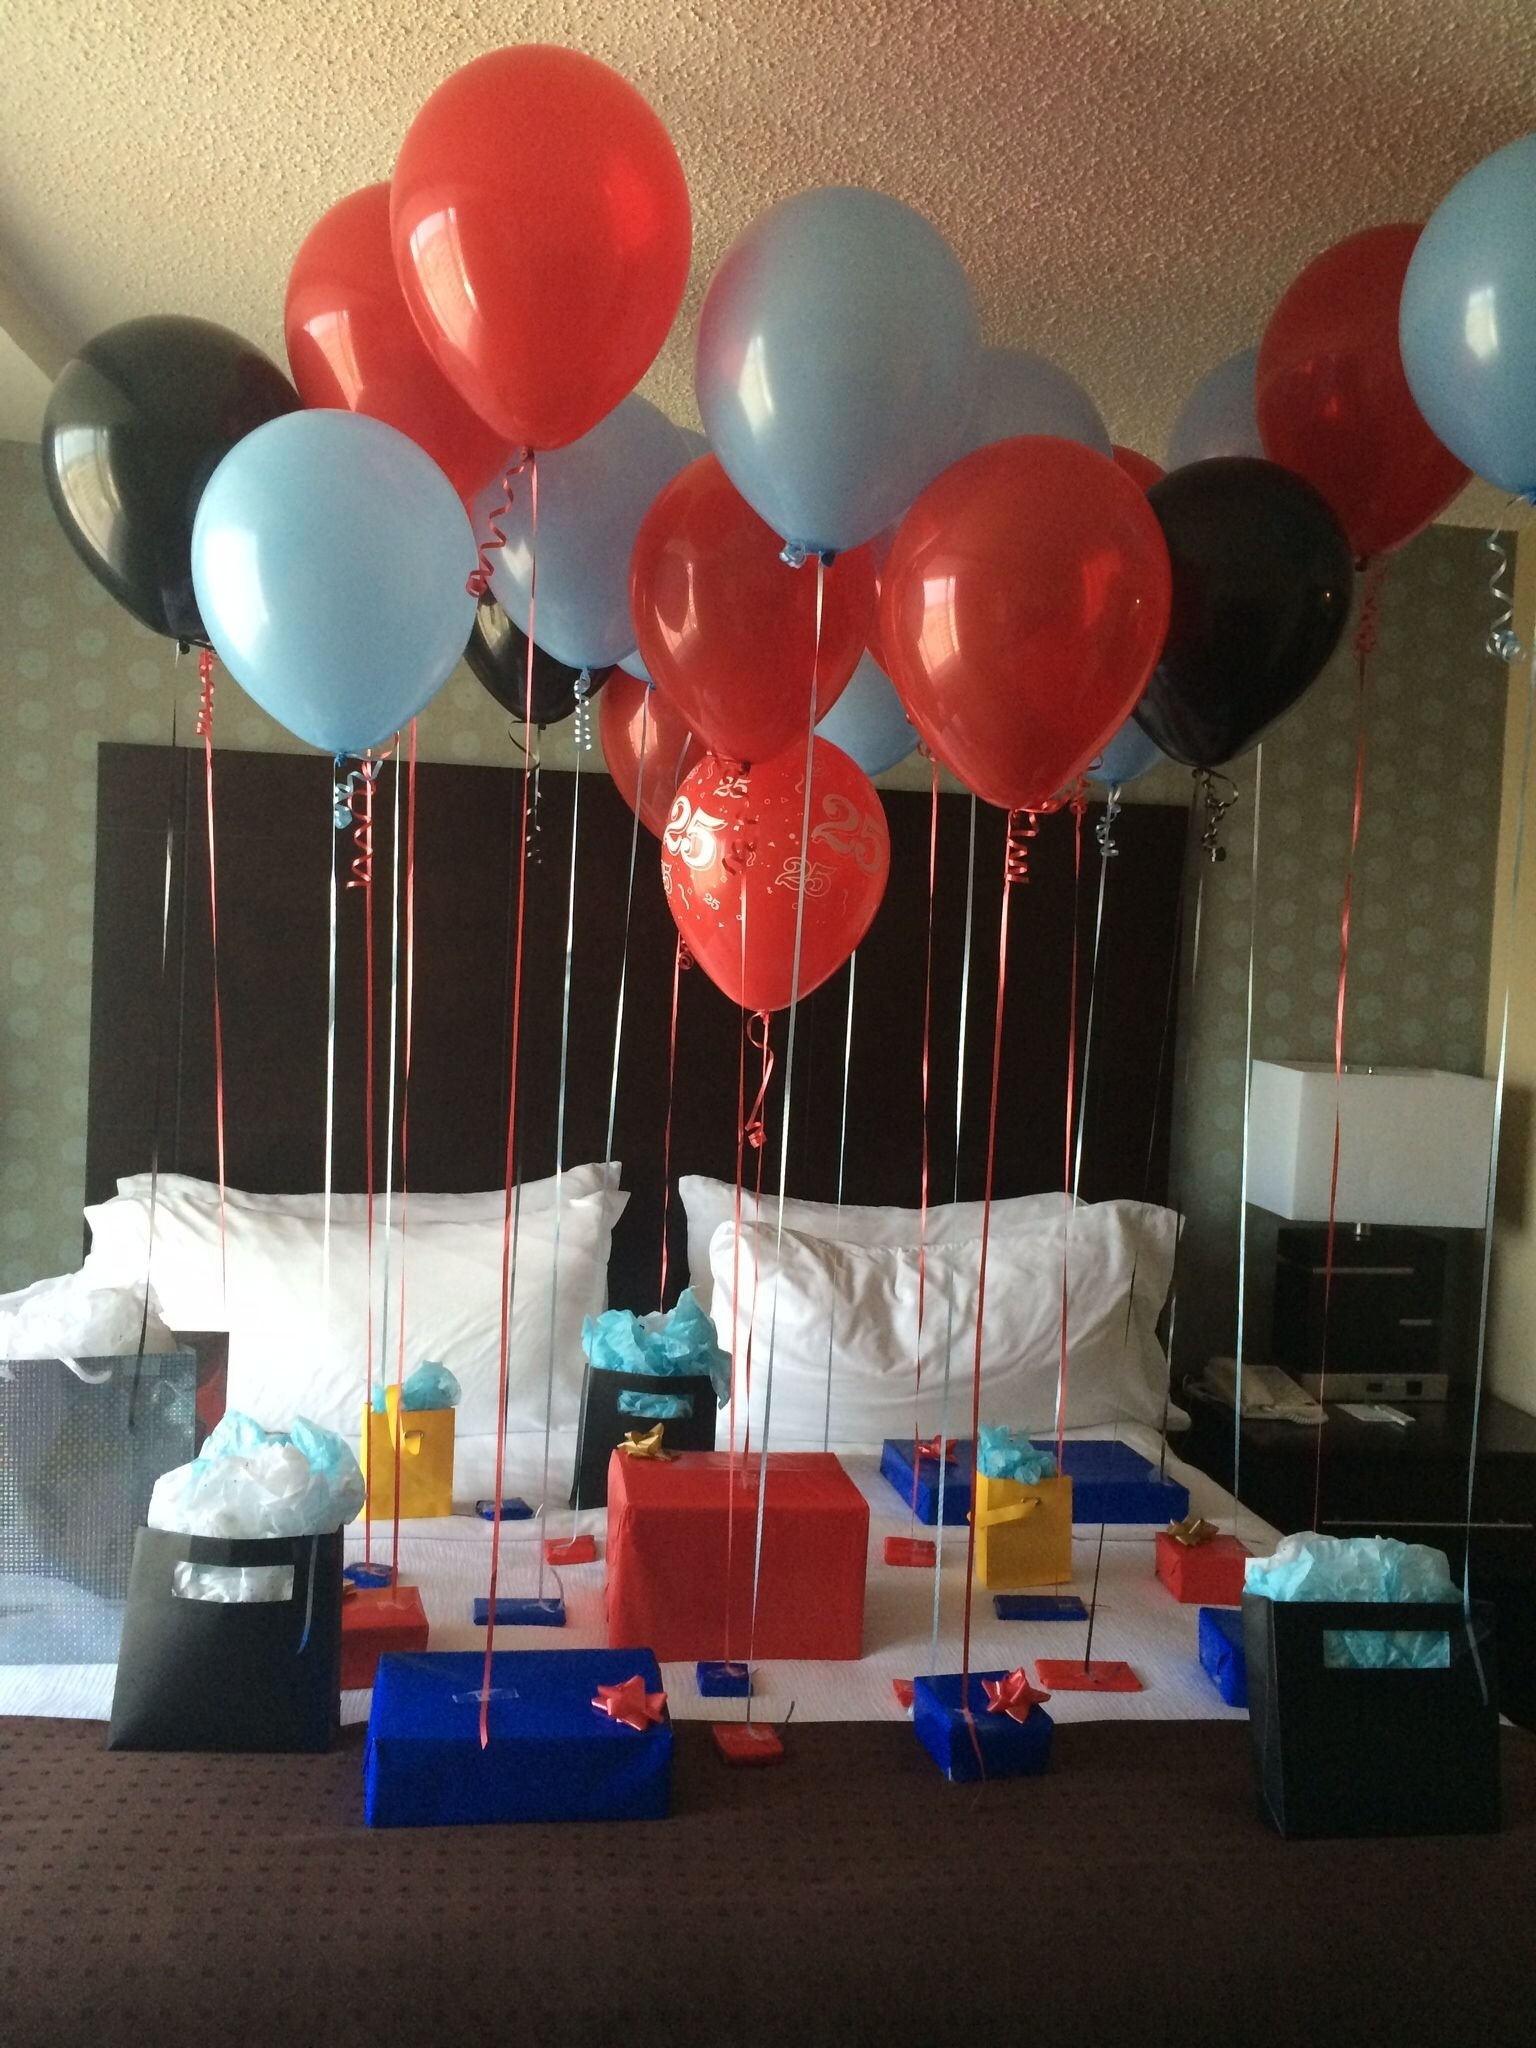 10 Stylish 25Th Birthday Party Ideas For Him 25 gifts for 25th birthday amazing birthday idea he loved it 2 2021